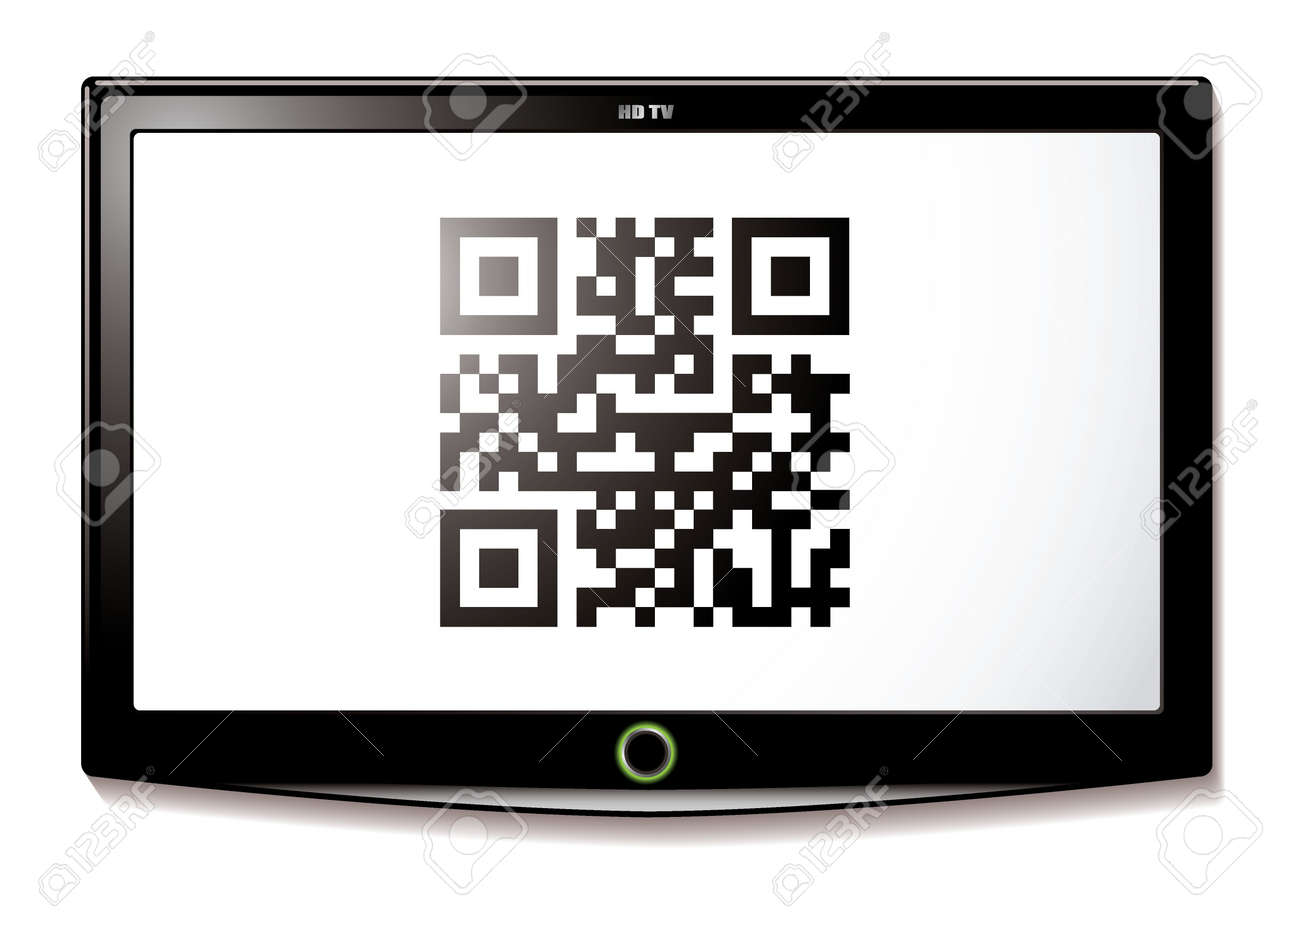 Modern Lcd Tv With Qr Code To Scan For Identification Stock Photo  # Television Moderne